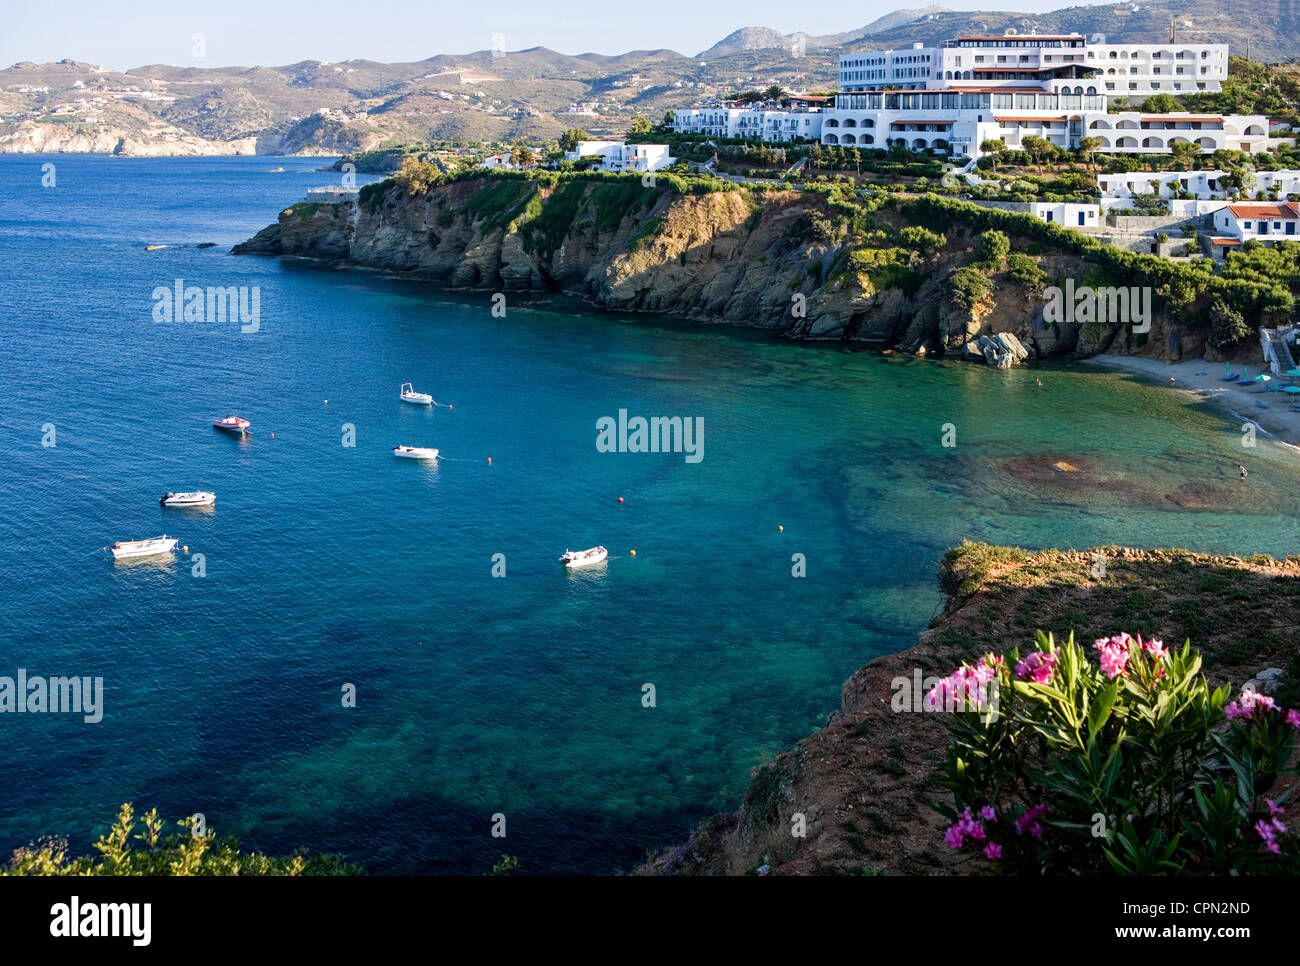 Europe Greece, Crete, tourist facilities in the Agia Pelagia bay. - Stock Image